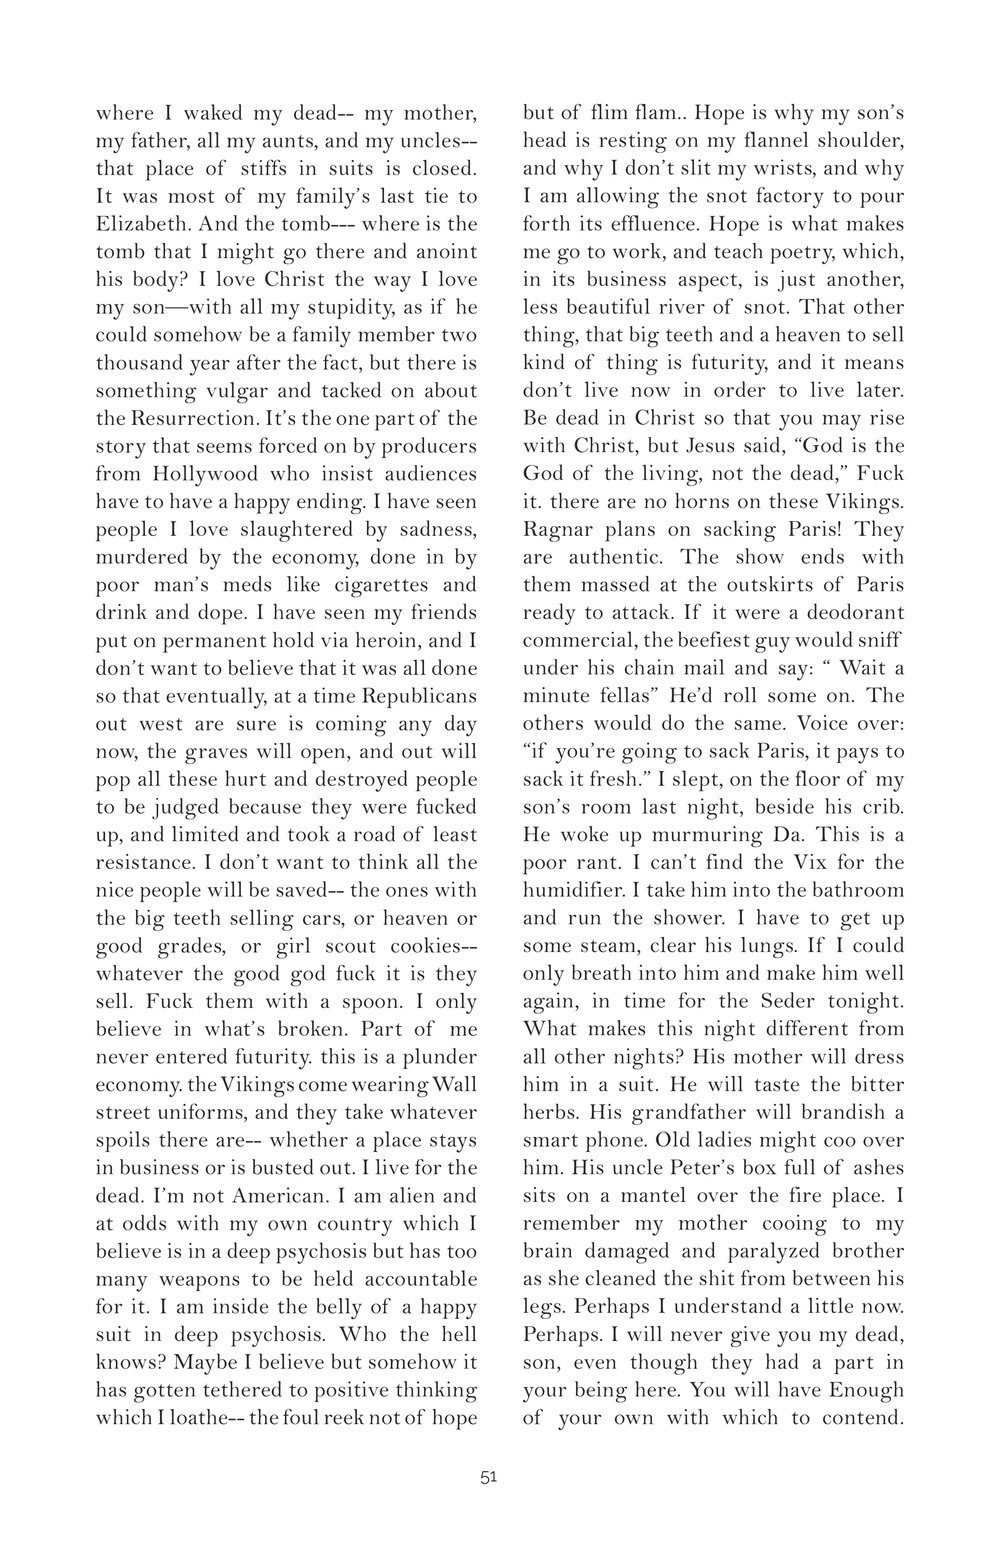 Shrew Issue 2 Part 4 D1-10.jpg